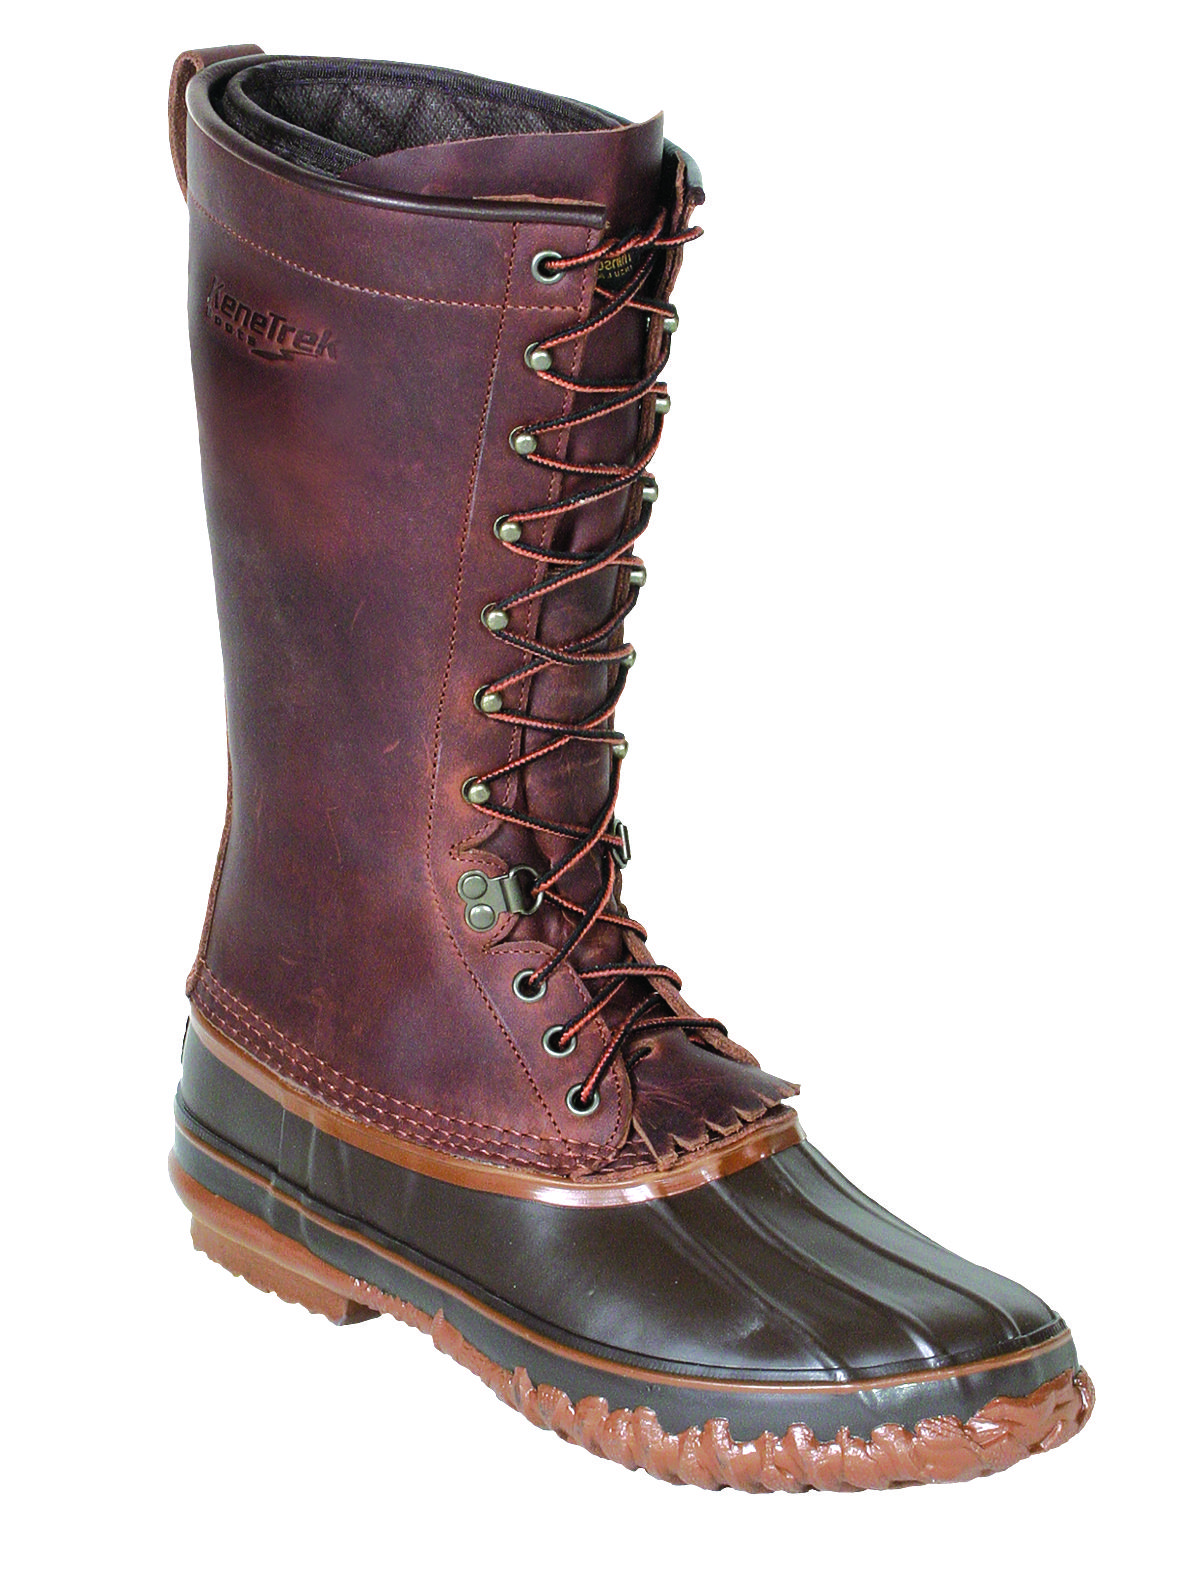 Kenetrek S 13 Rancher In The Traditonal Style Upland Boot Is Preferred By Bowhunters For Its Ground Sensing Abi Insulated Boots Composite Toe Work Boots Boots